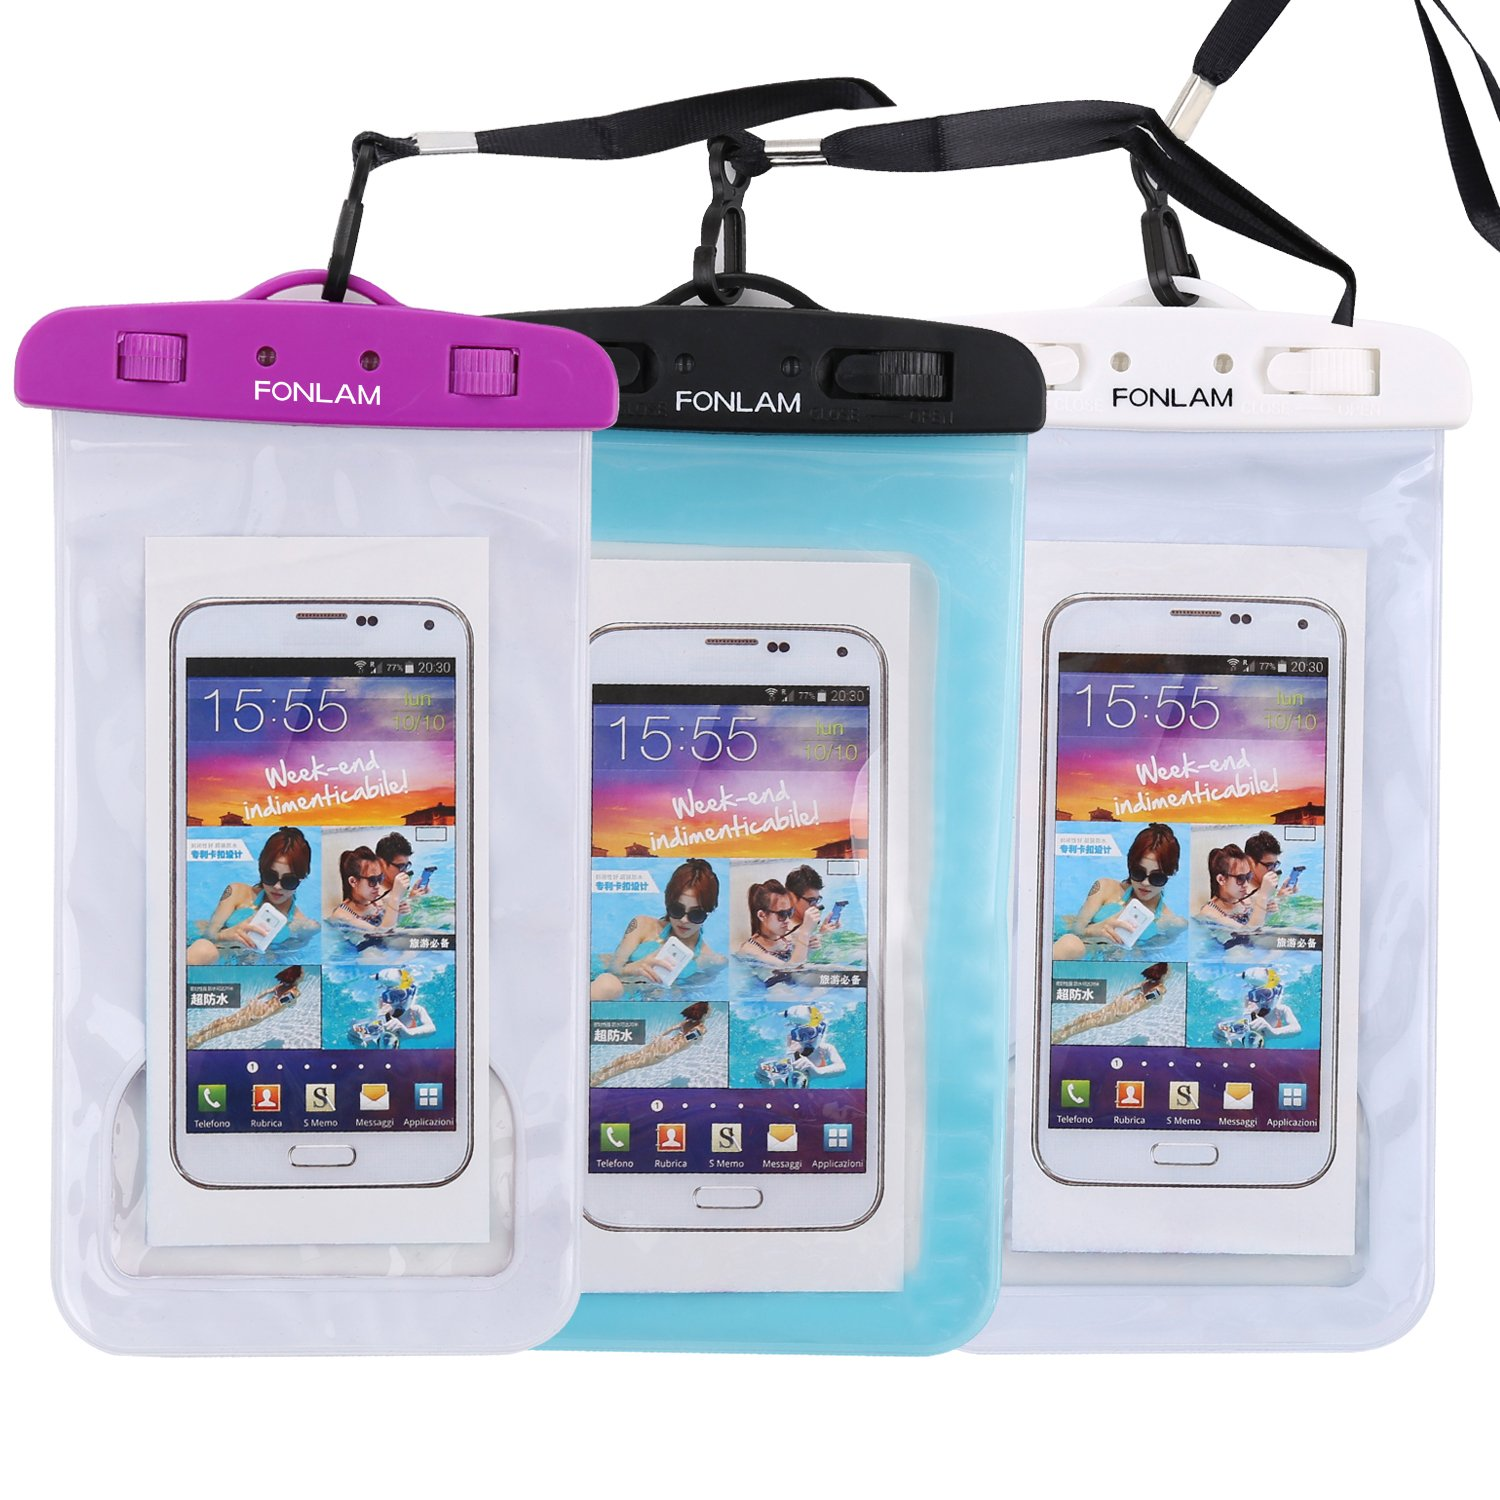 Universal Waterproof Case, FONLAM IPX8 Waterproof Phone Pouch Dry Bag for iPhone X, 8/7/7 Plus/6/6S Plus, Samsung Galaxy S9/S9 Plus/S8/S8 Plus/Note 8, Google Pixel 2 LG up to 7.0'' (Purple,Black,White)